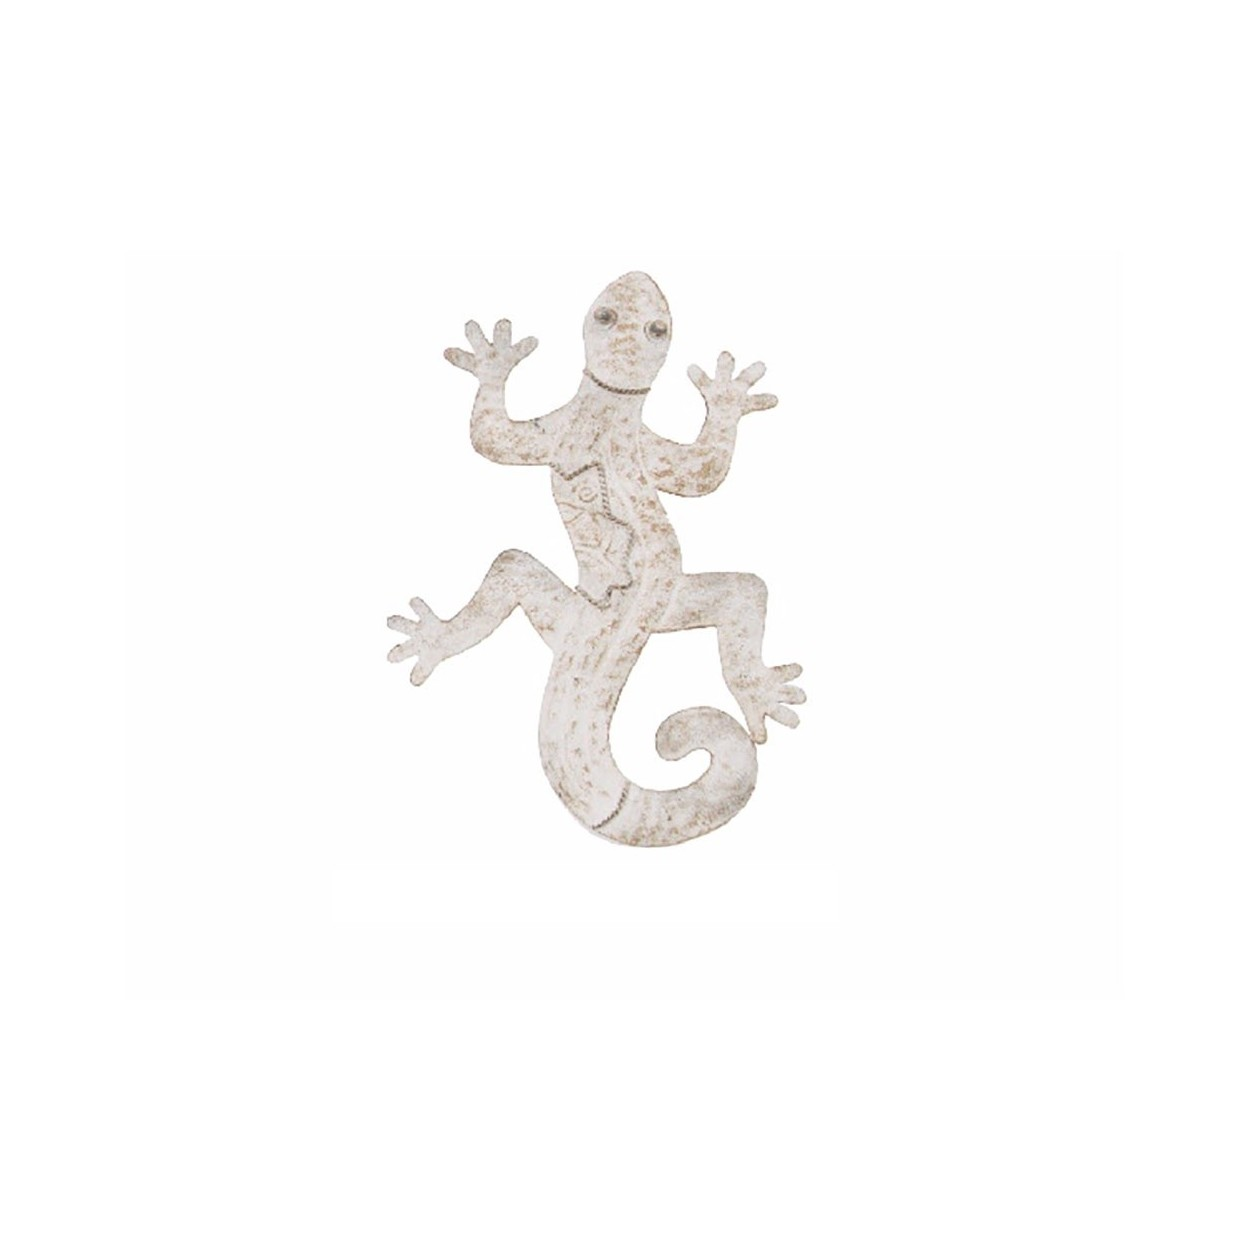 Figura lagarto de metal decoraci n de pared 37x29x3 cm for Figuras de metal para decorar paredes